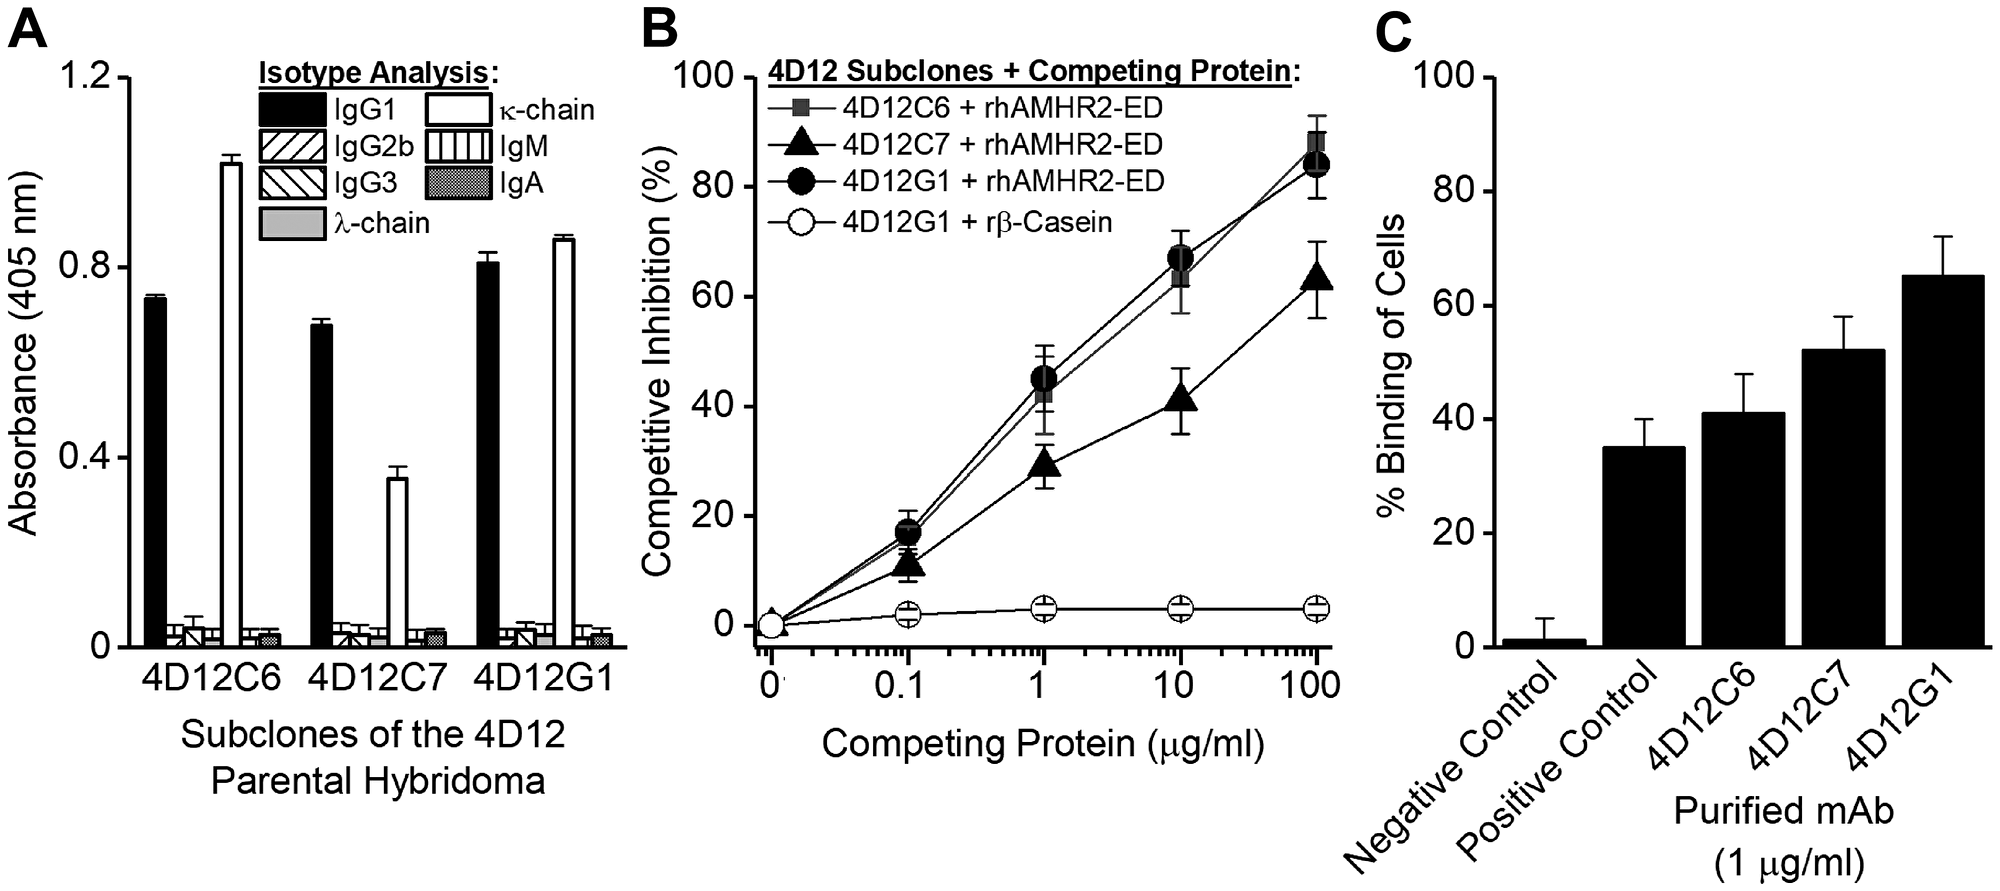 Generation of mAbs specific for rhAMHR2-ED.